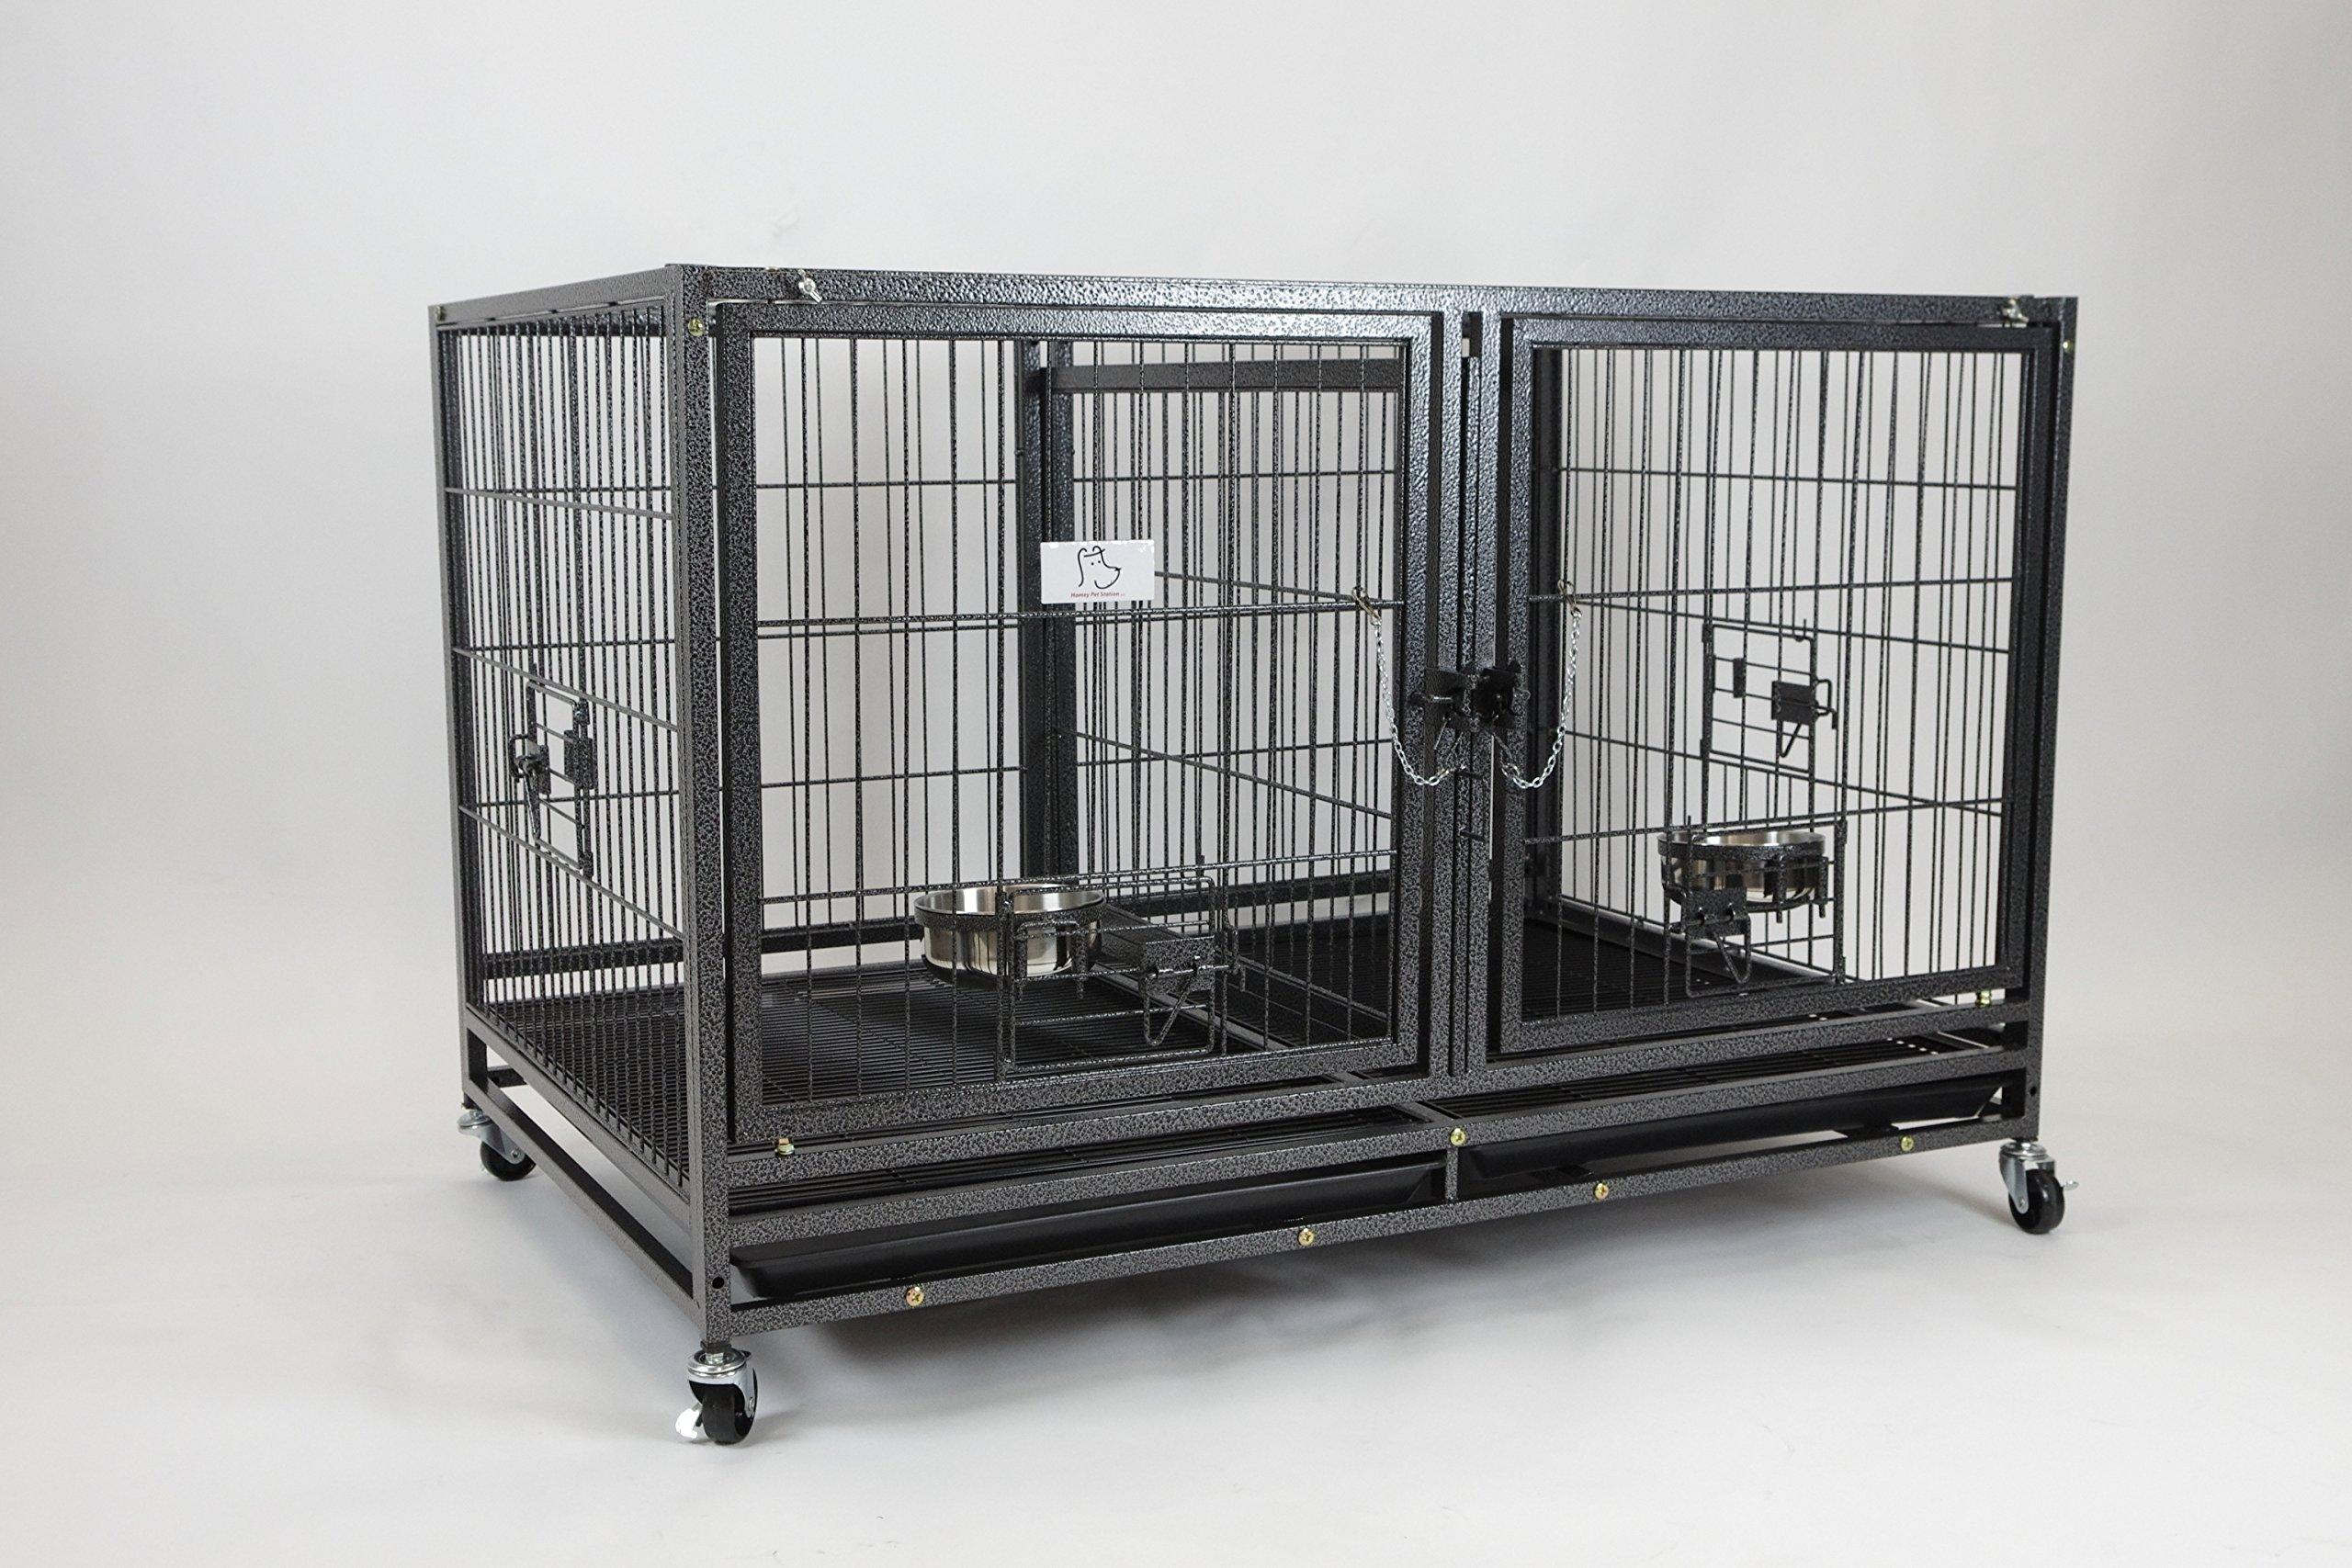 Homey Pet-43 All Metal Open Top Stackable Heavy Duty Cage(Upper) w/Floor Grid, Tray, Divider, and Feeding Bowl by Homey Pet (Image #3)